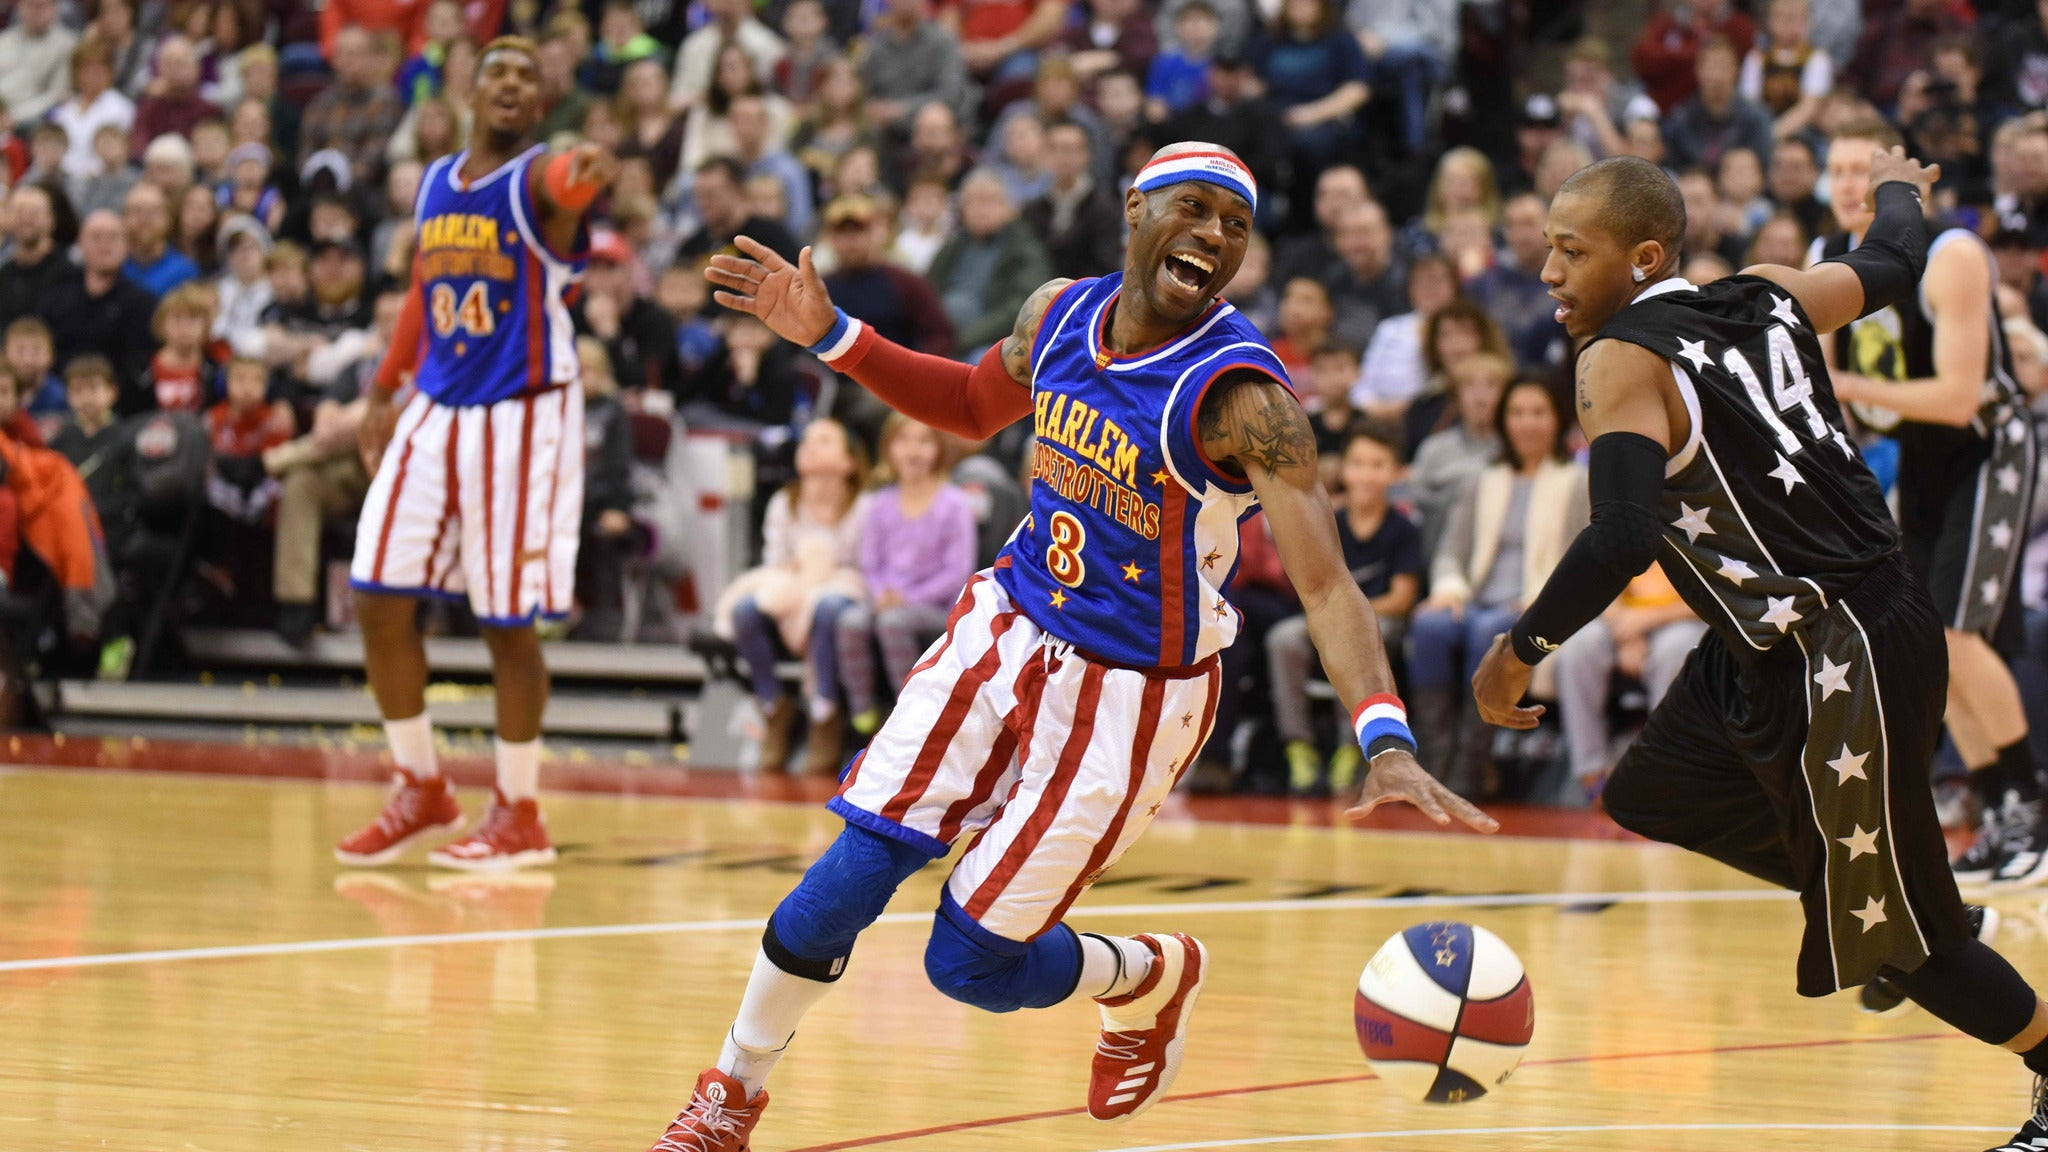 Harlem Globetrotters at Infinite Energy Center